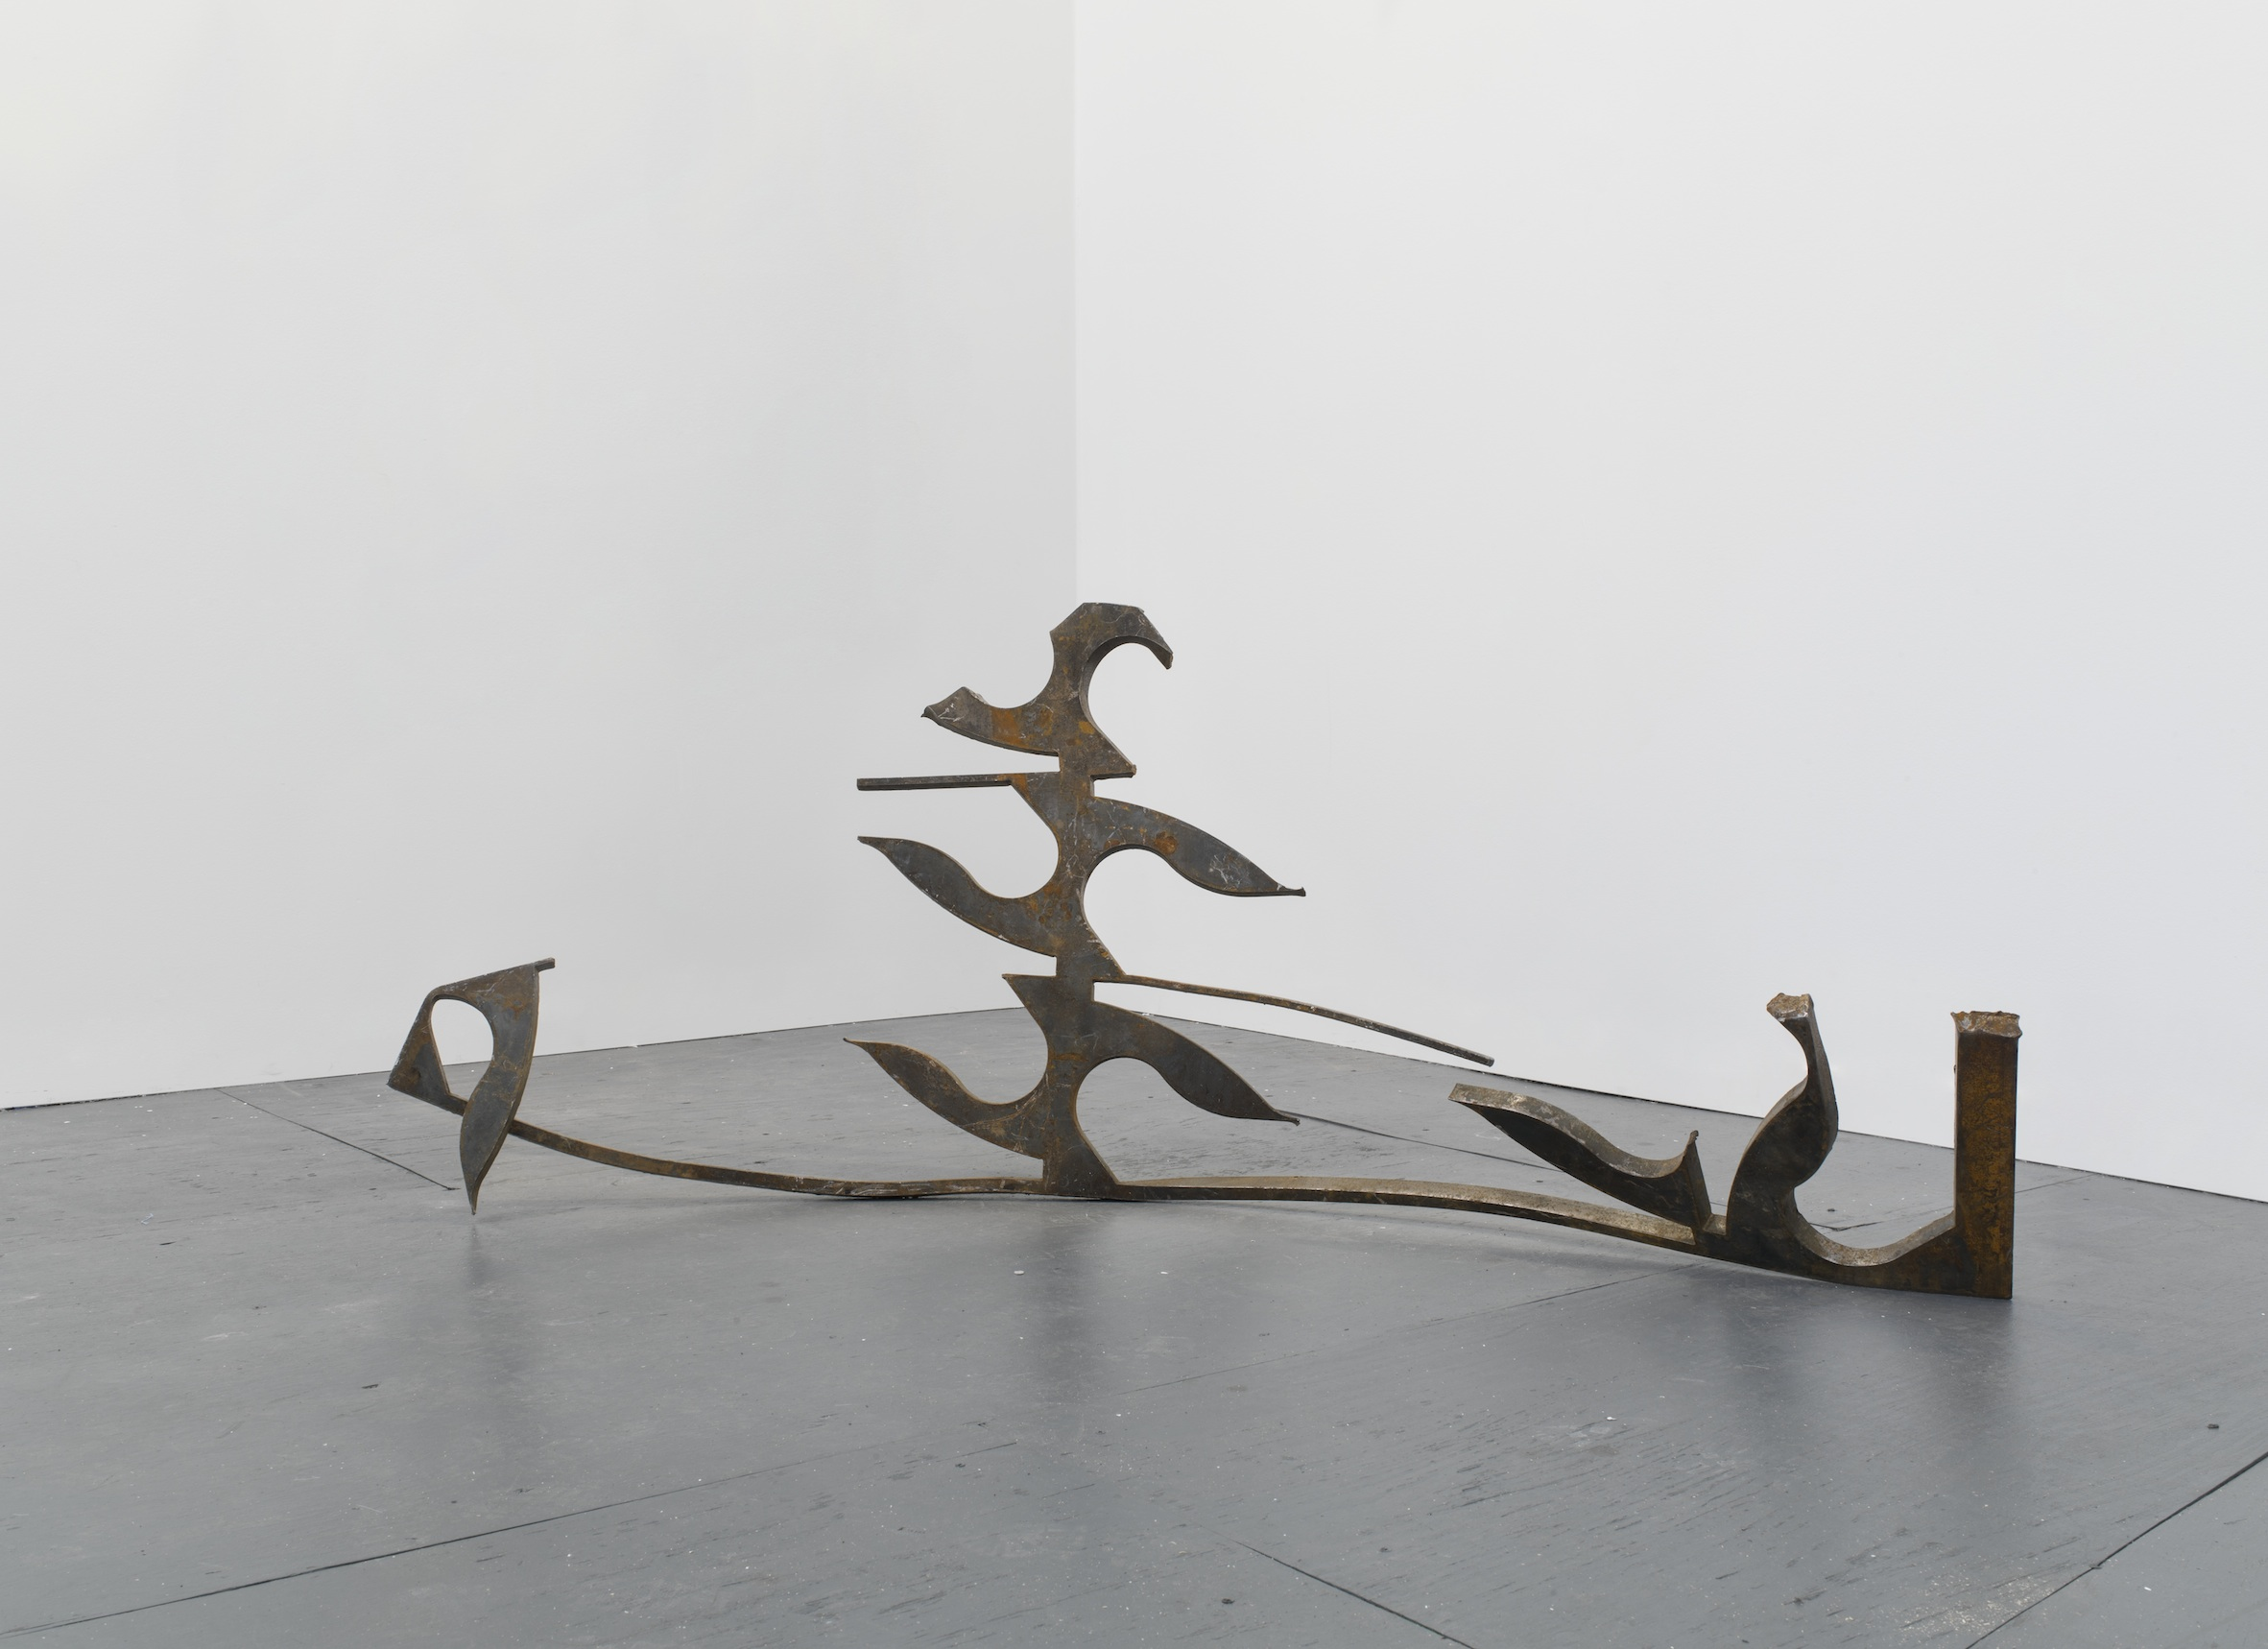 Chafer's gallop  2013  Steel  77 x 58 x 190 cm / 30.3 x 22.8 x 74.8 in